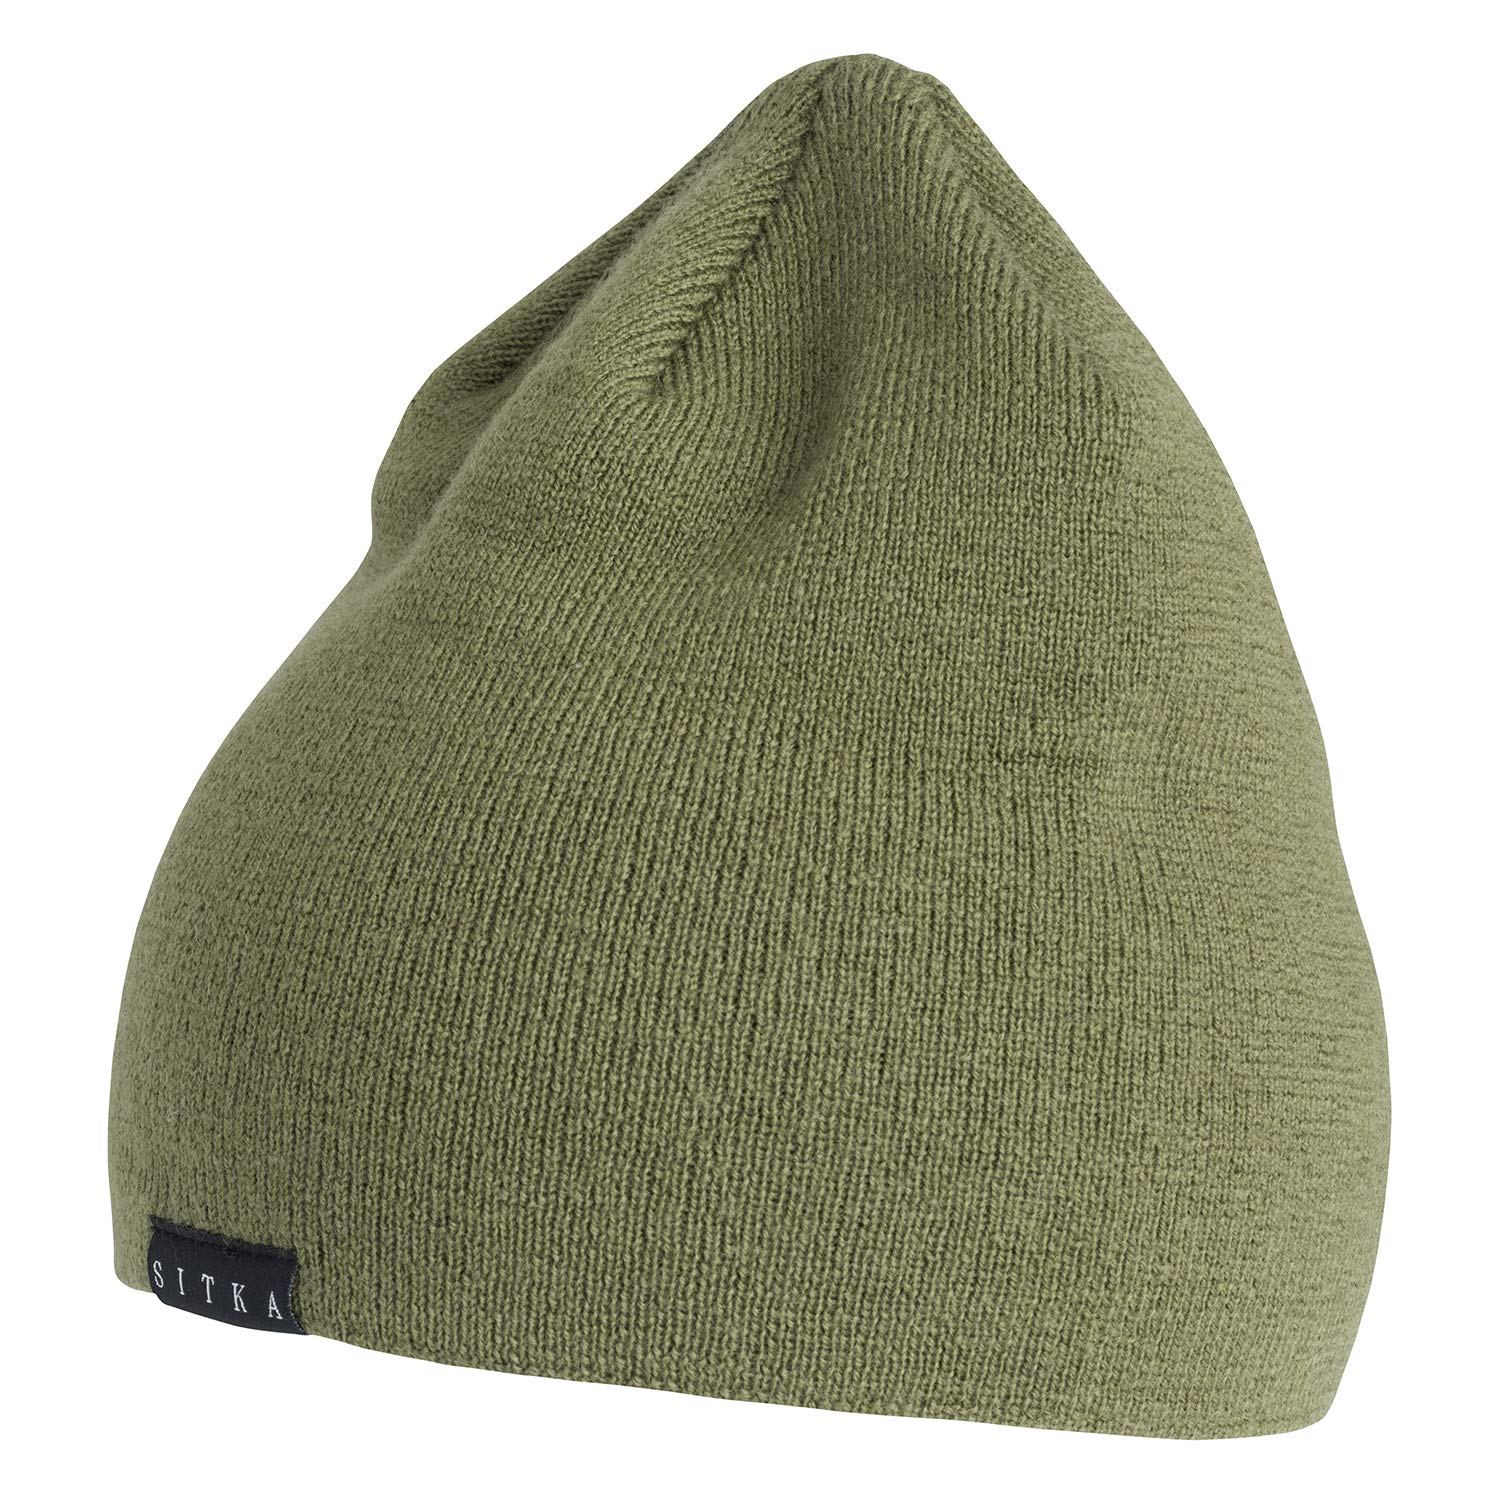 SITKA Merino Beanie Forest One Size Fits All by SITKA